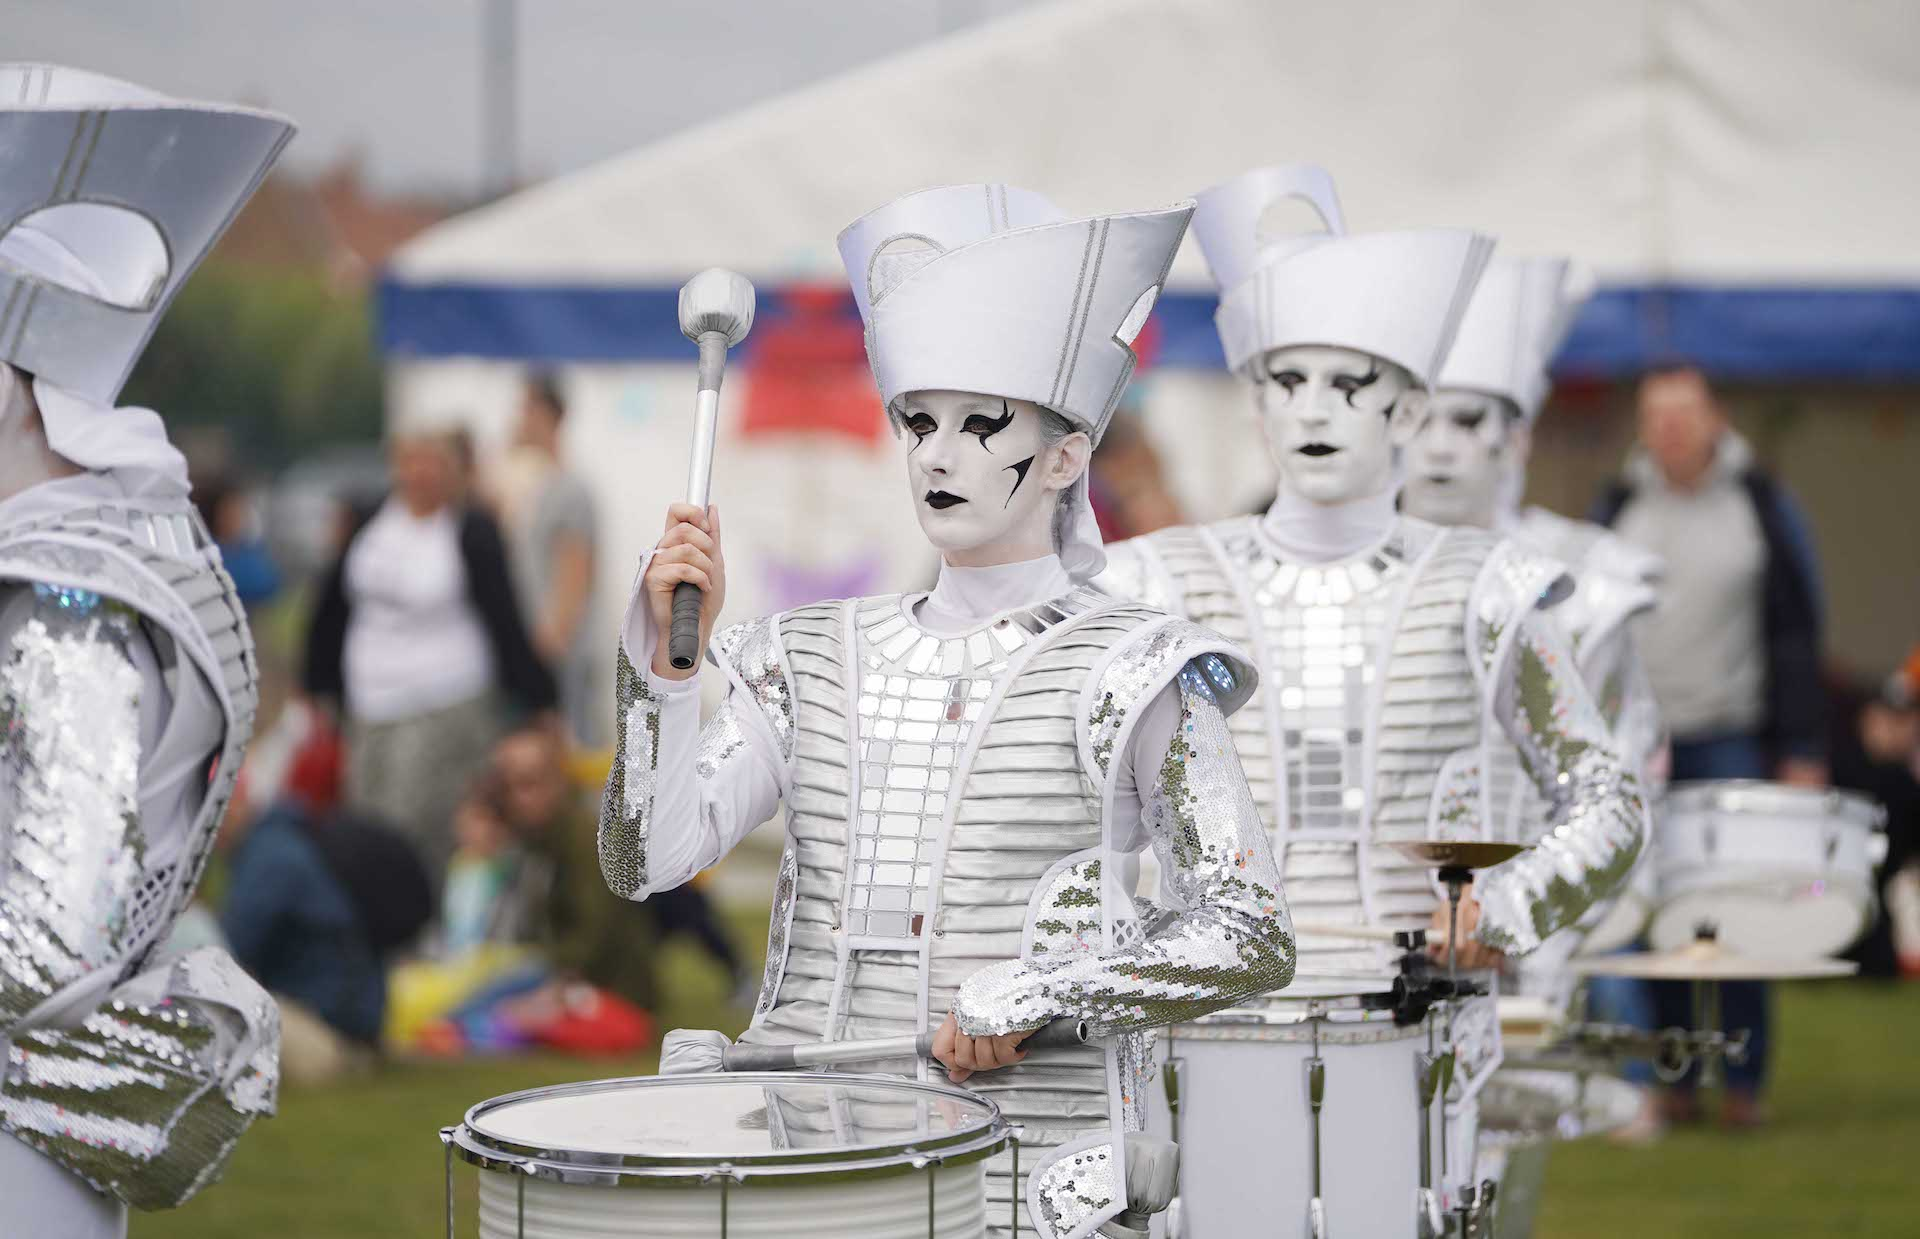 Drummer boys in white face paint and costumes at Seaham Food Festival